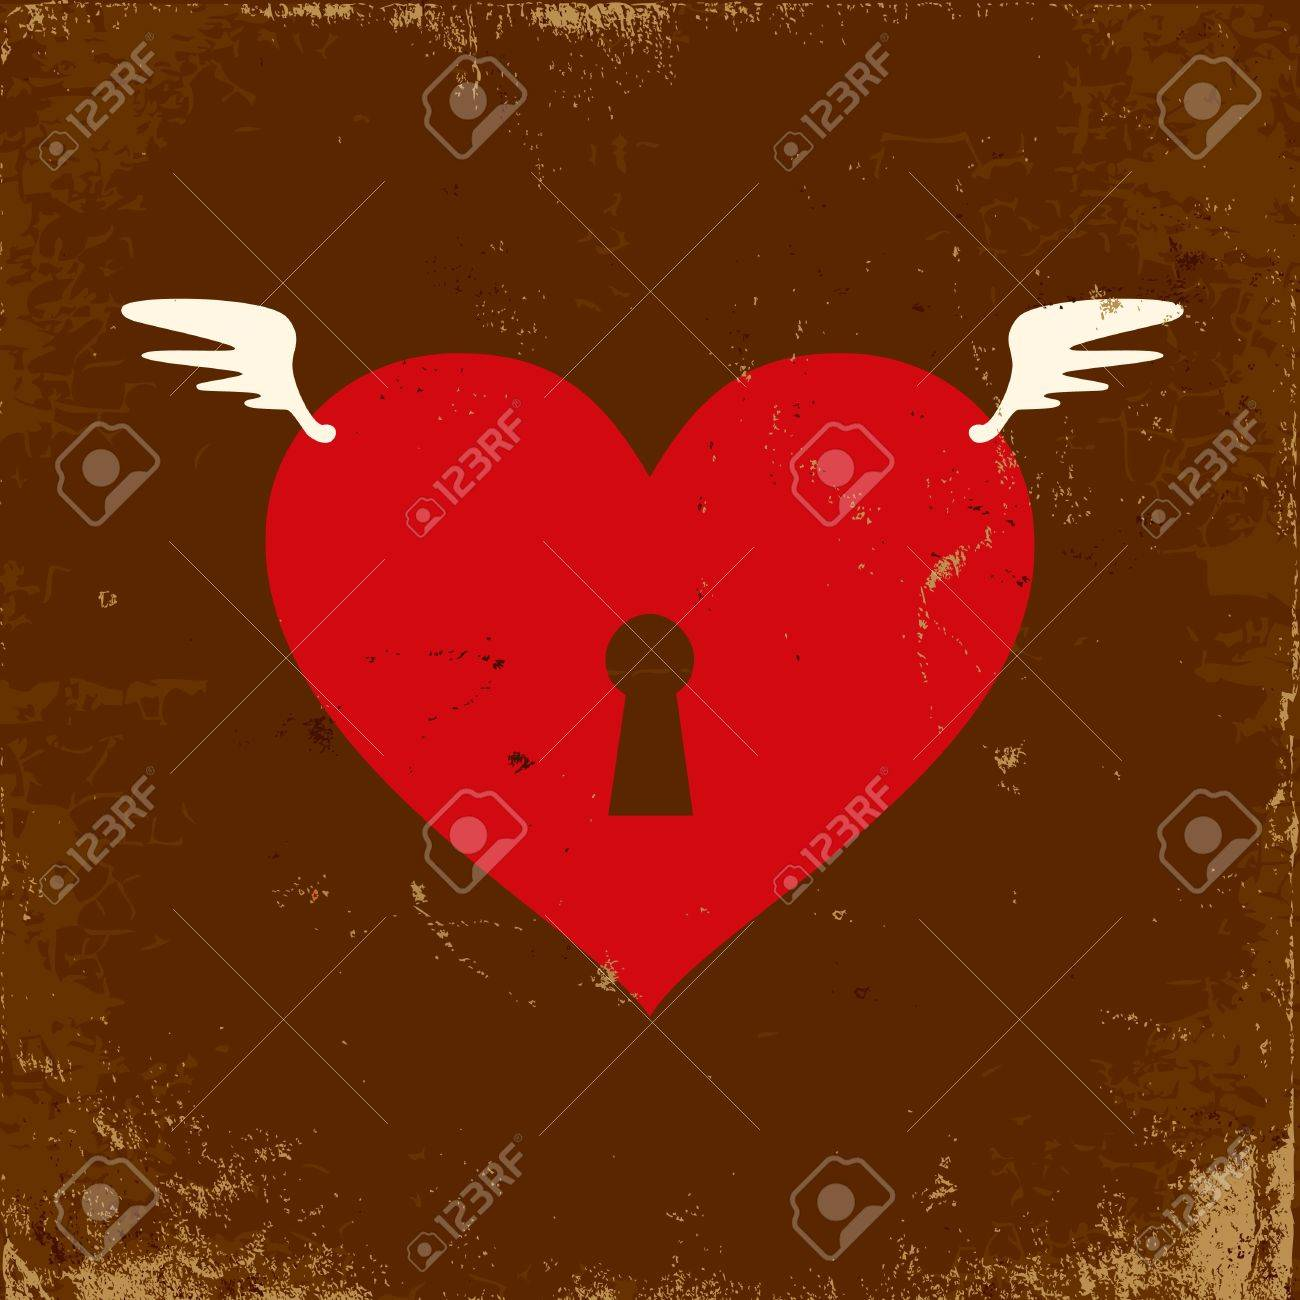 Retro illustration of the heart with wings Stock Vector - 10436055